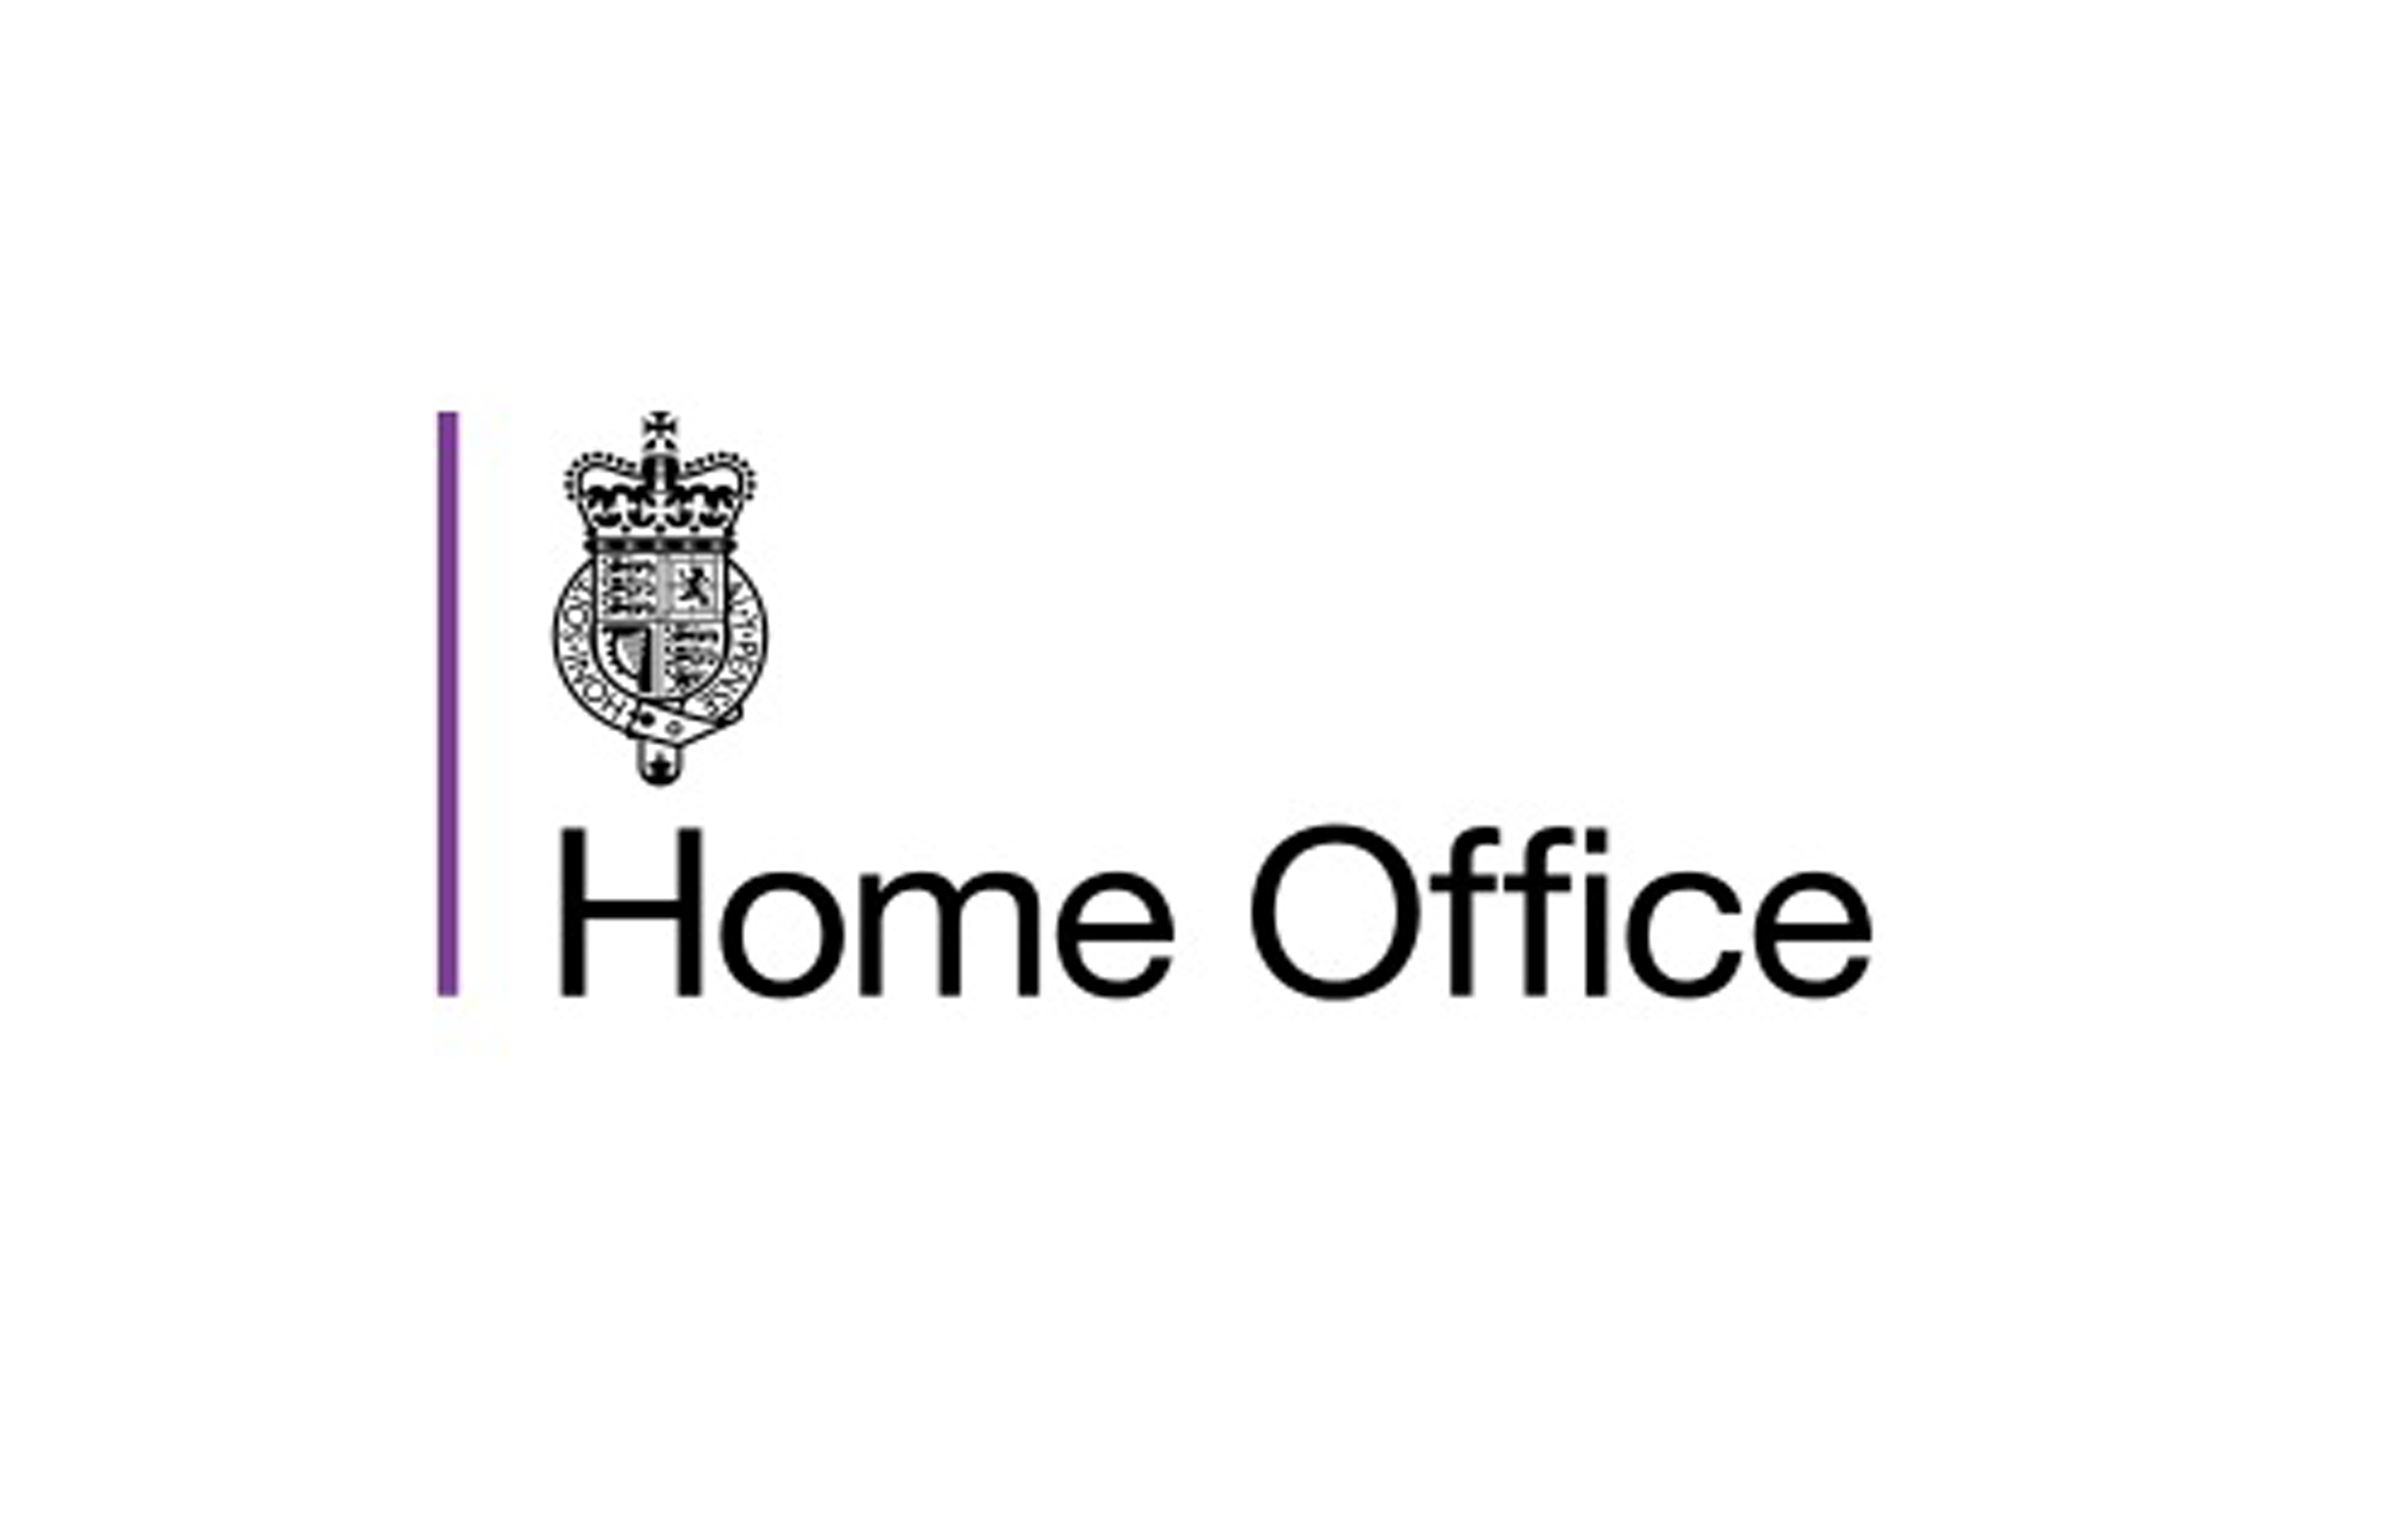 Is the Home Office taking over domestic abuse?